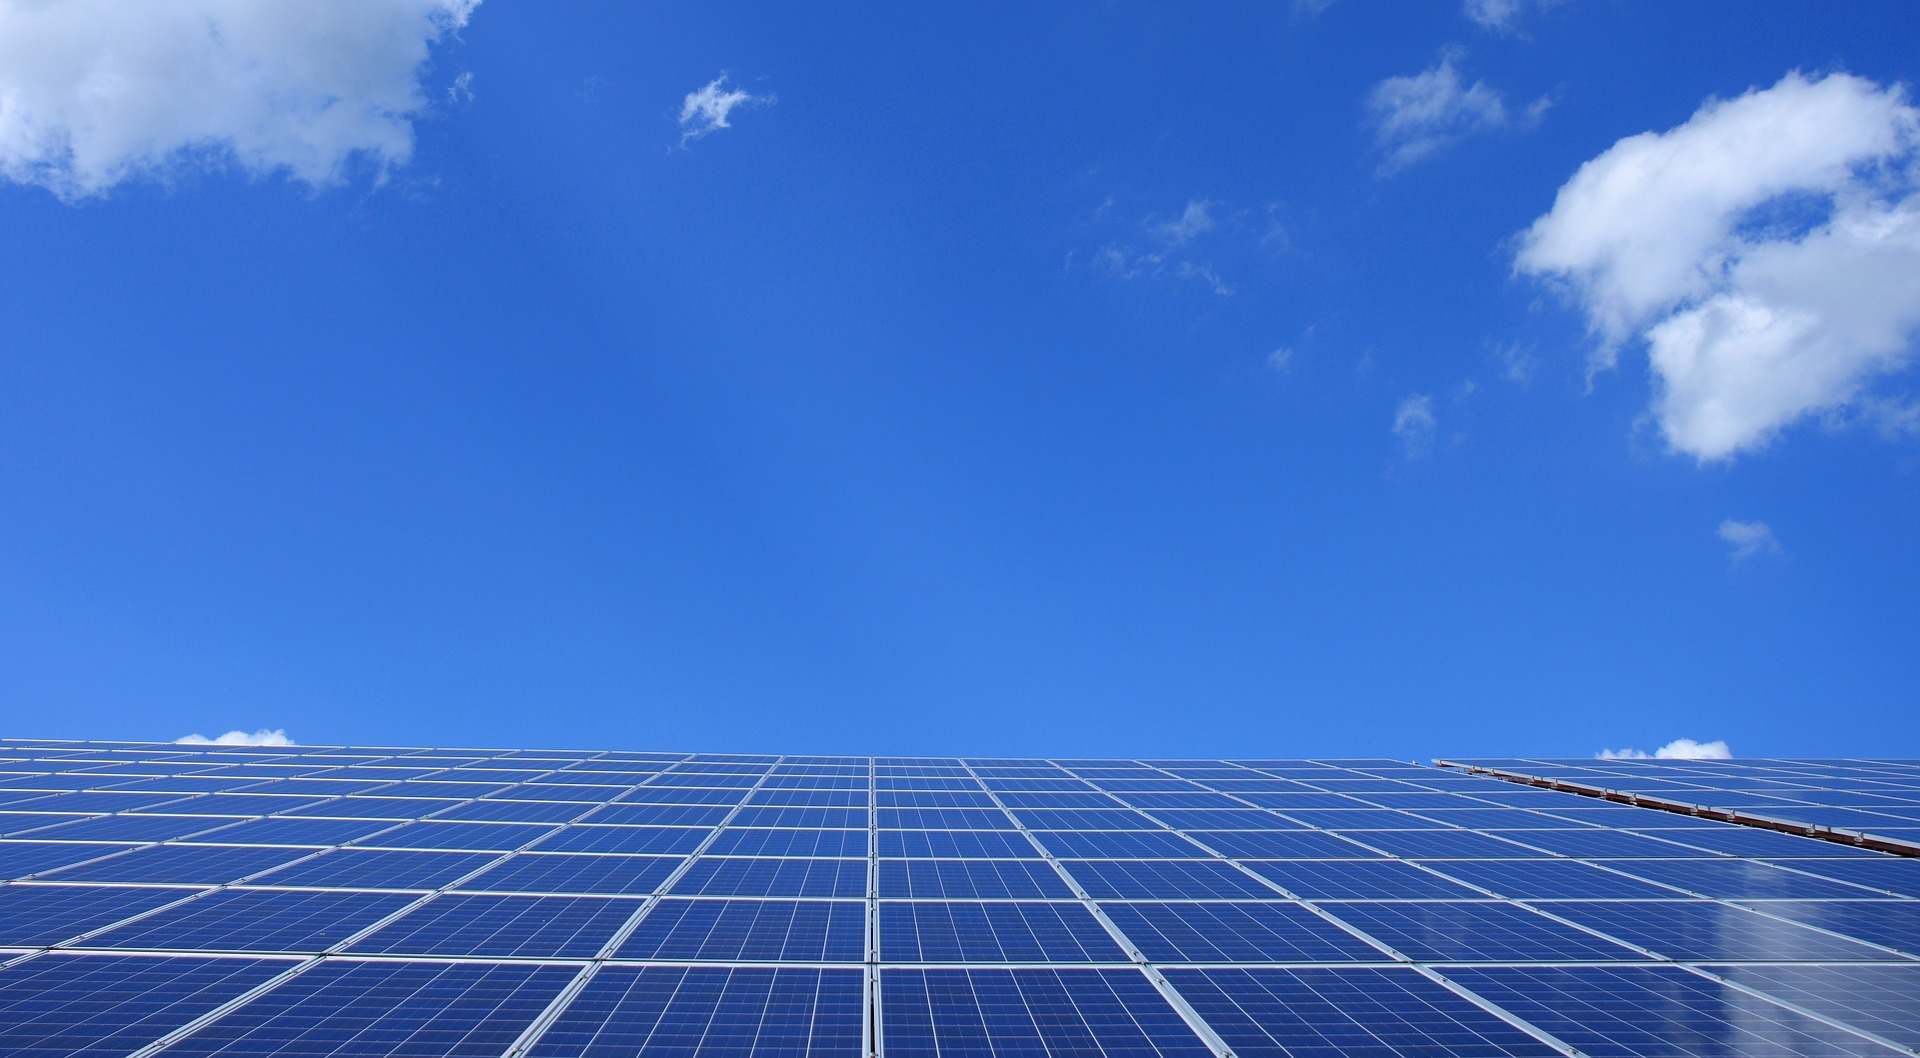 World's Largest Solar-Powered Battery Storage Facility Will Be Operational In Florida Soon